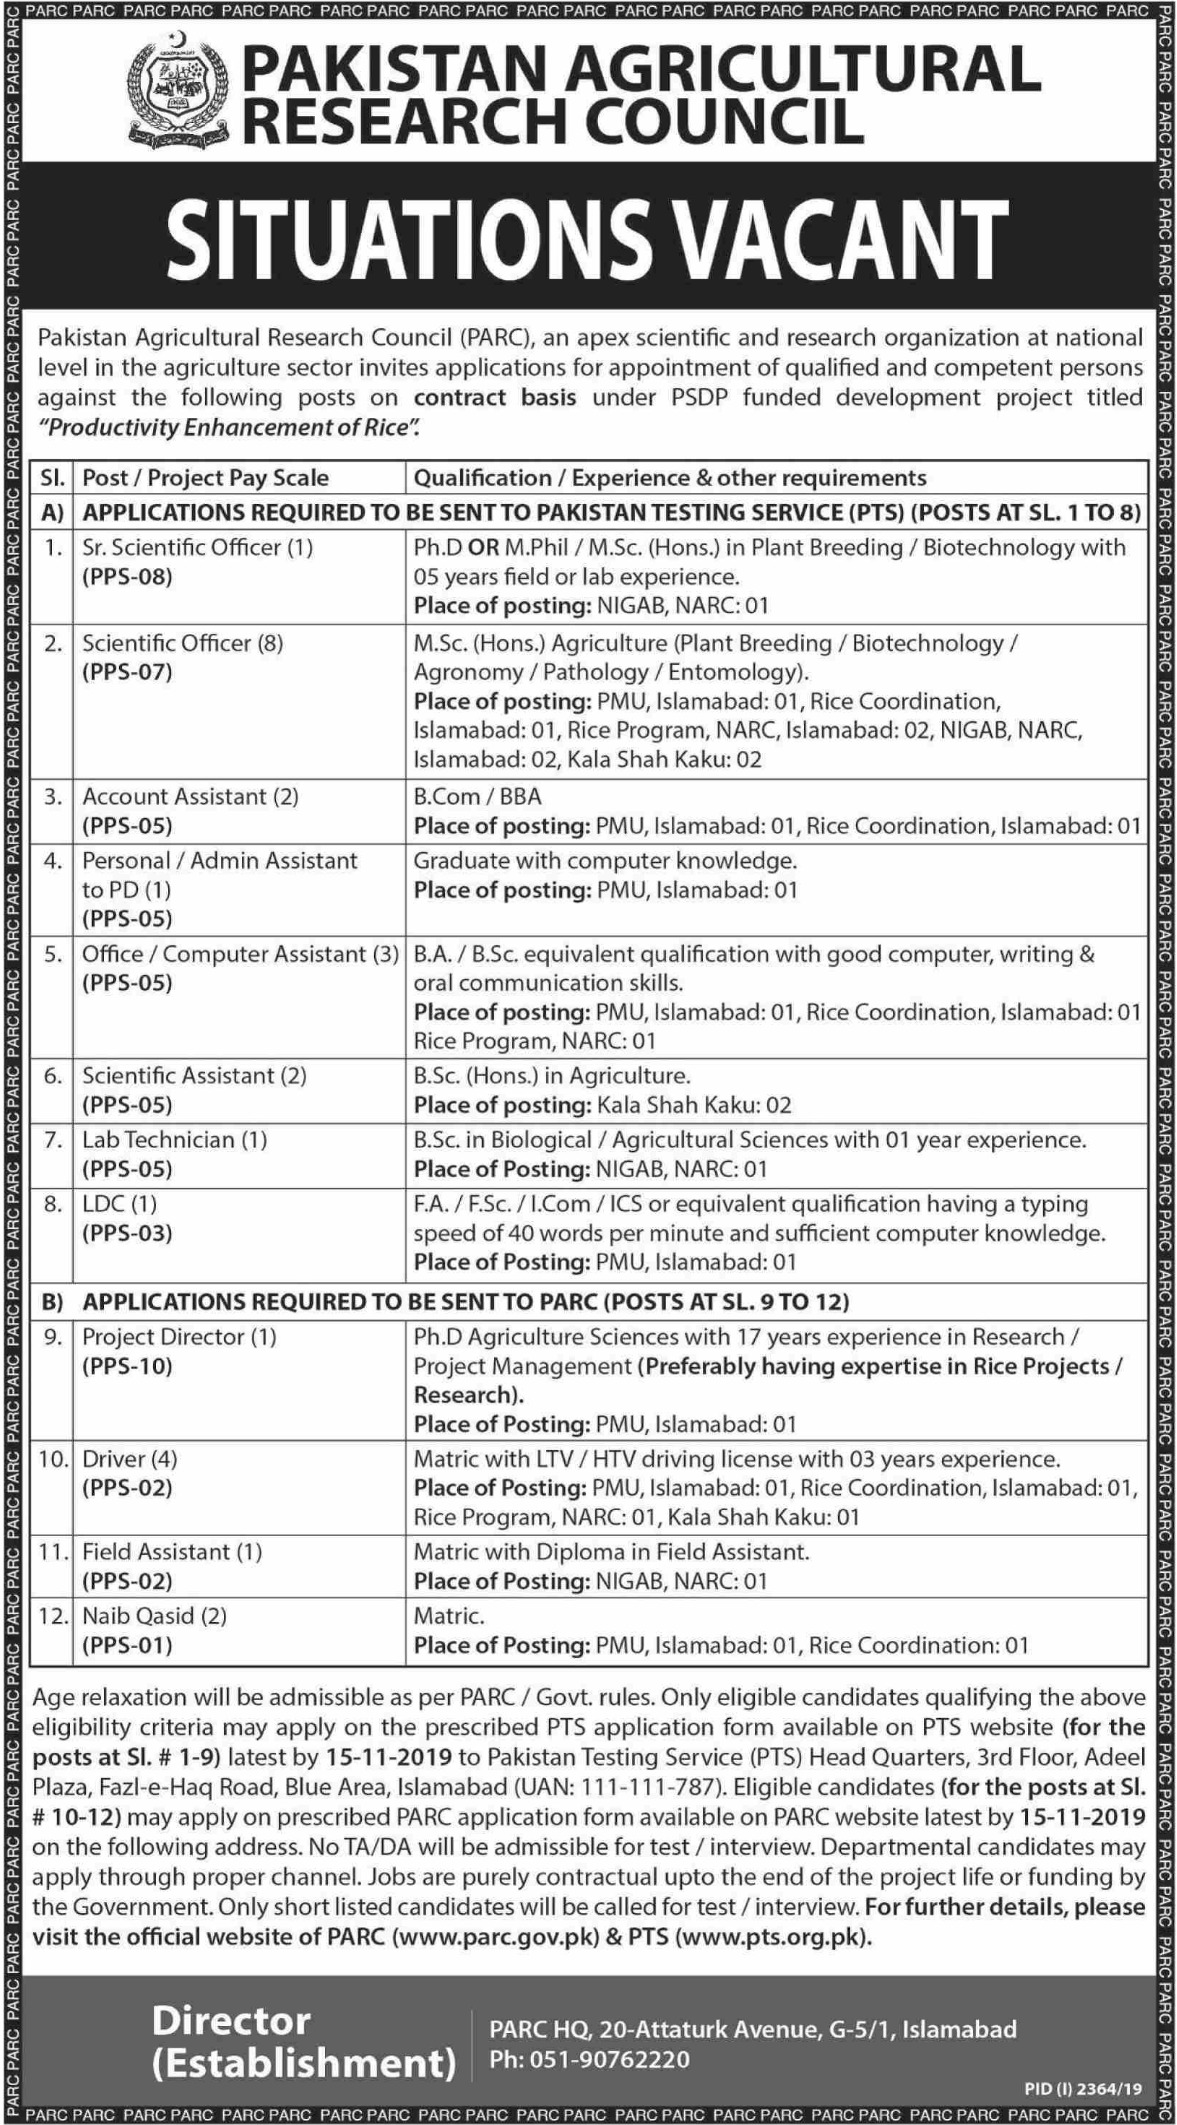 Pakistan Agricultural Research Council PARC Jobs Via PTS